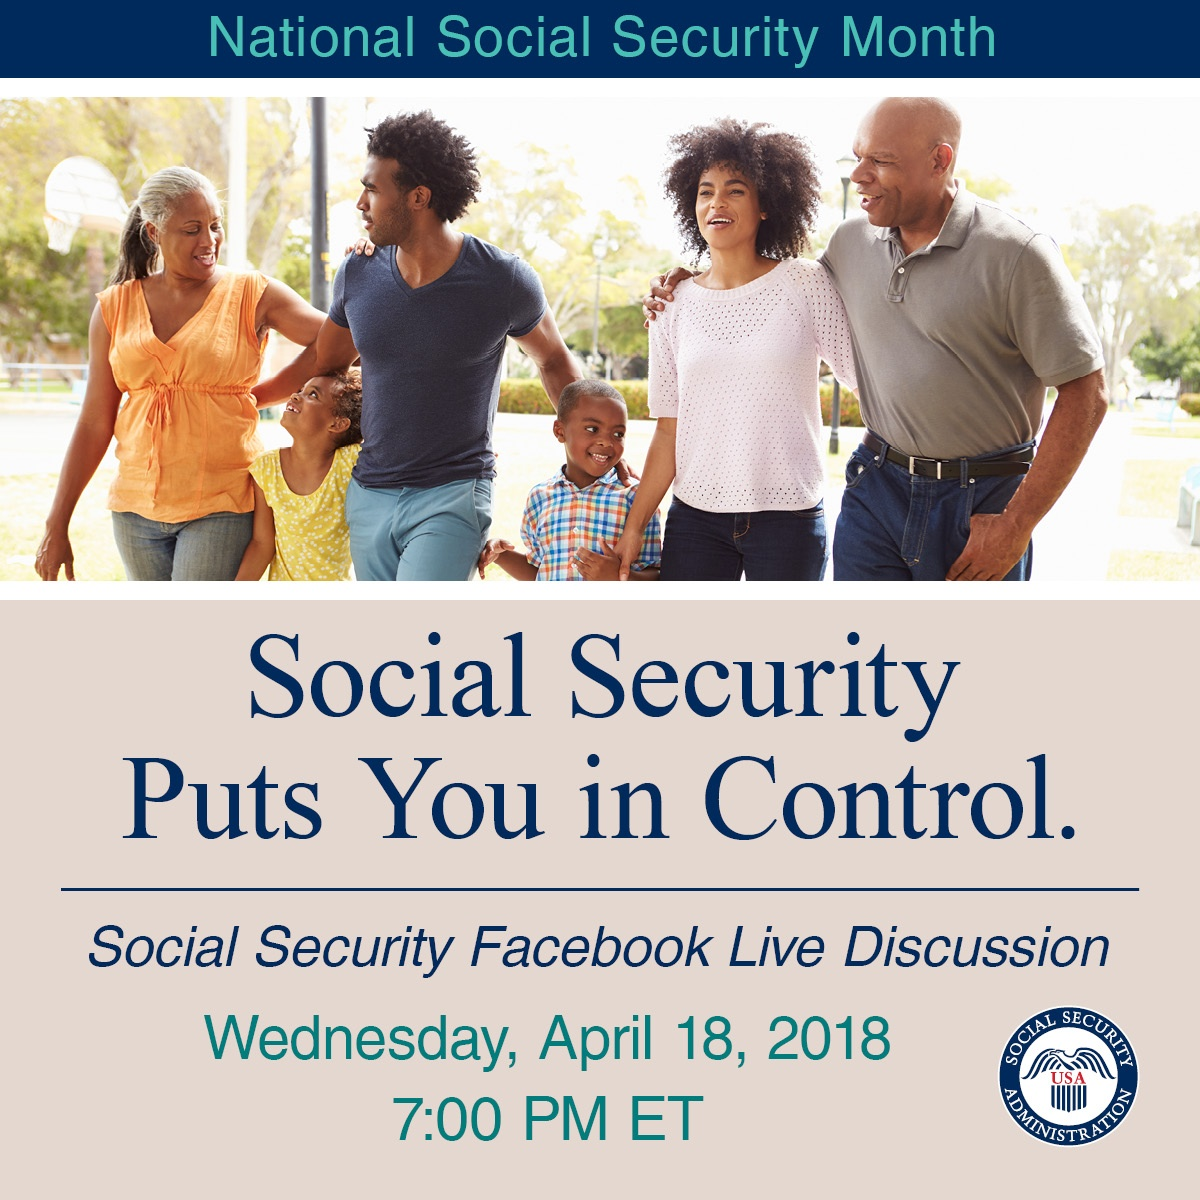 Image of family. Text: Social Security Puts You In Control. Social Security Facebook Live Discussion. Wednesday, April 18, 2018 7:00 PM ET